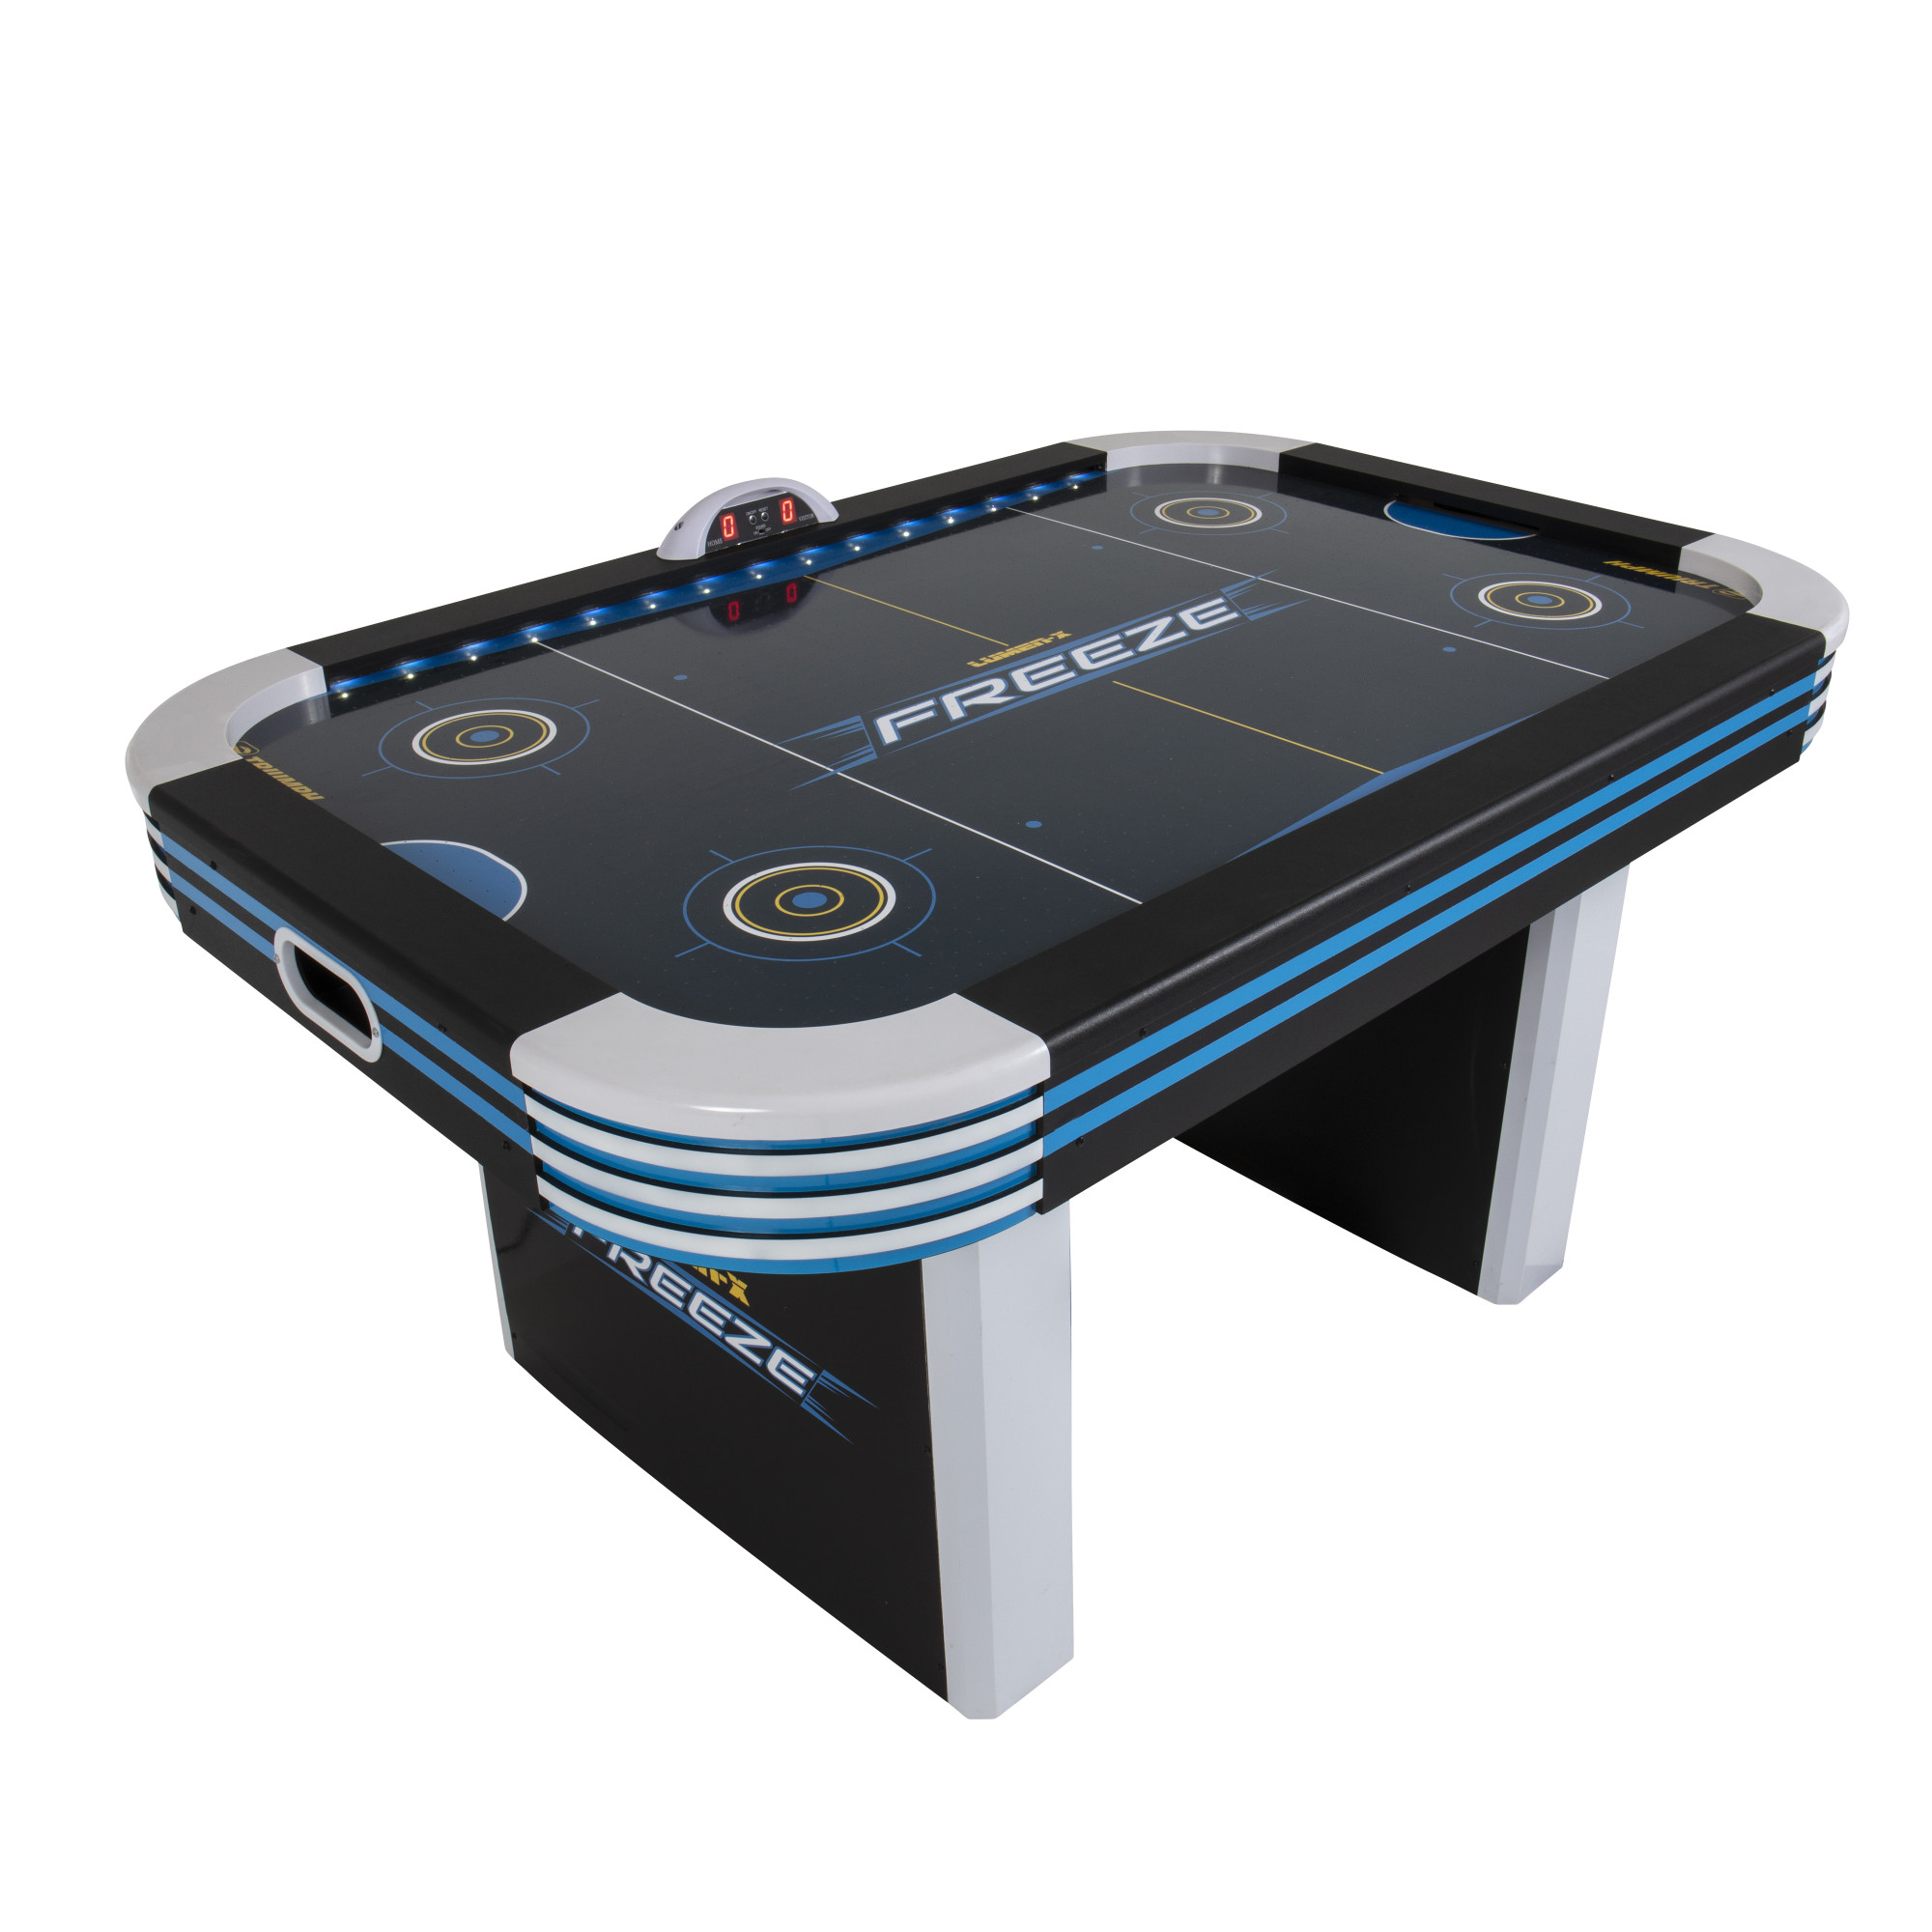 Triumph 5' Lumen-X Freeze LED Light Up Air-Powered Hockey Table Includes 2 LED Pushers and LED Puck